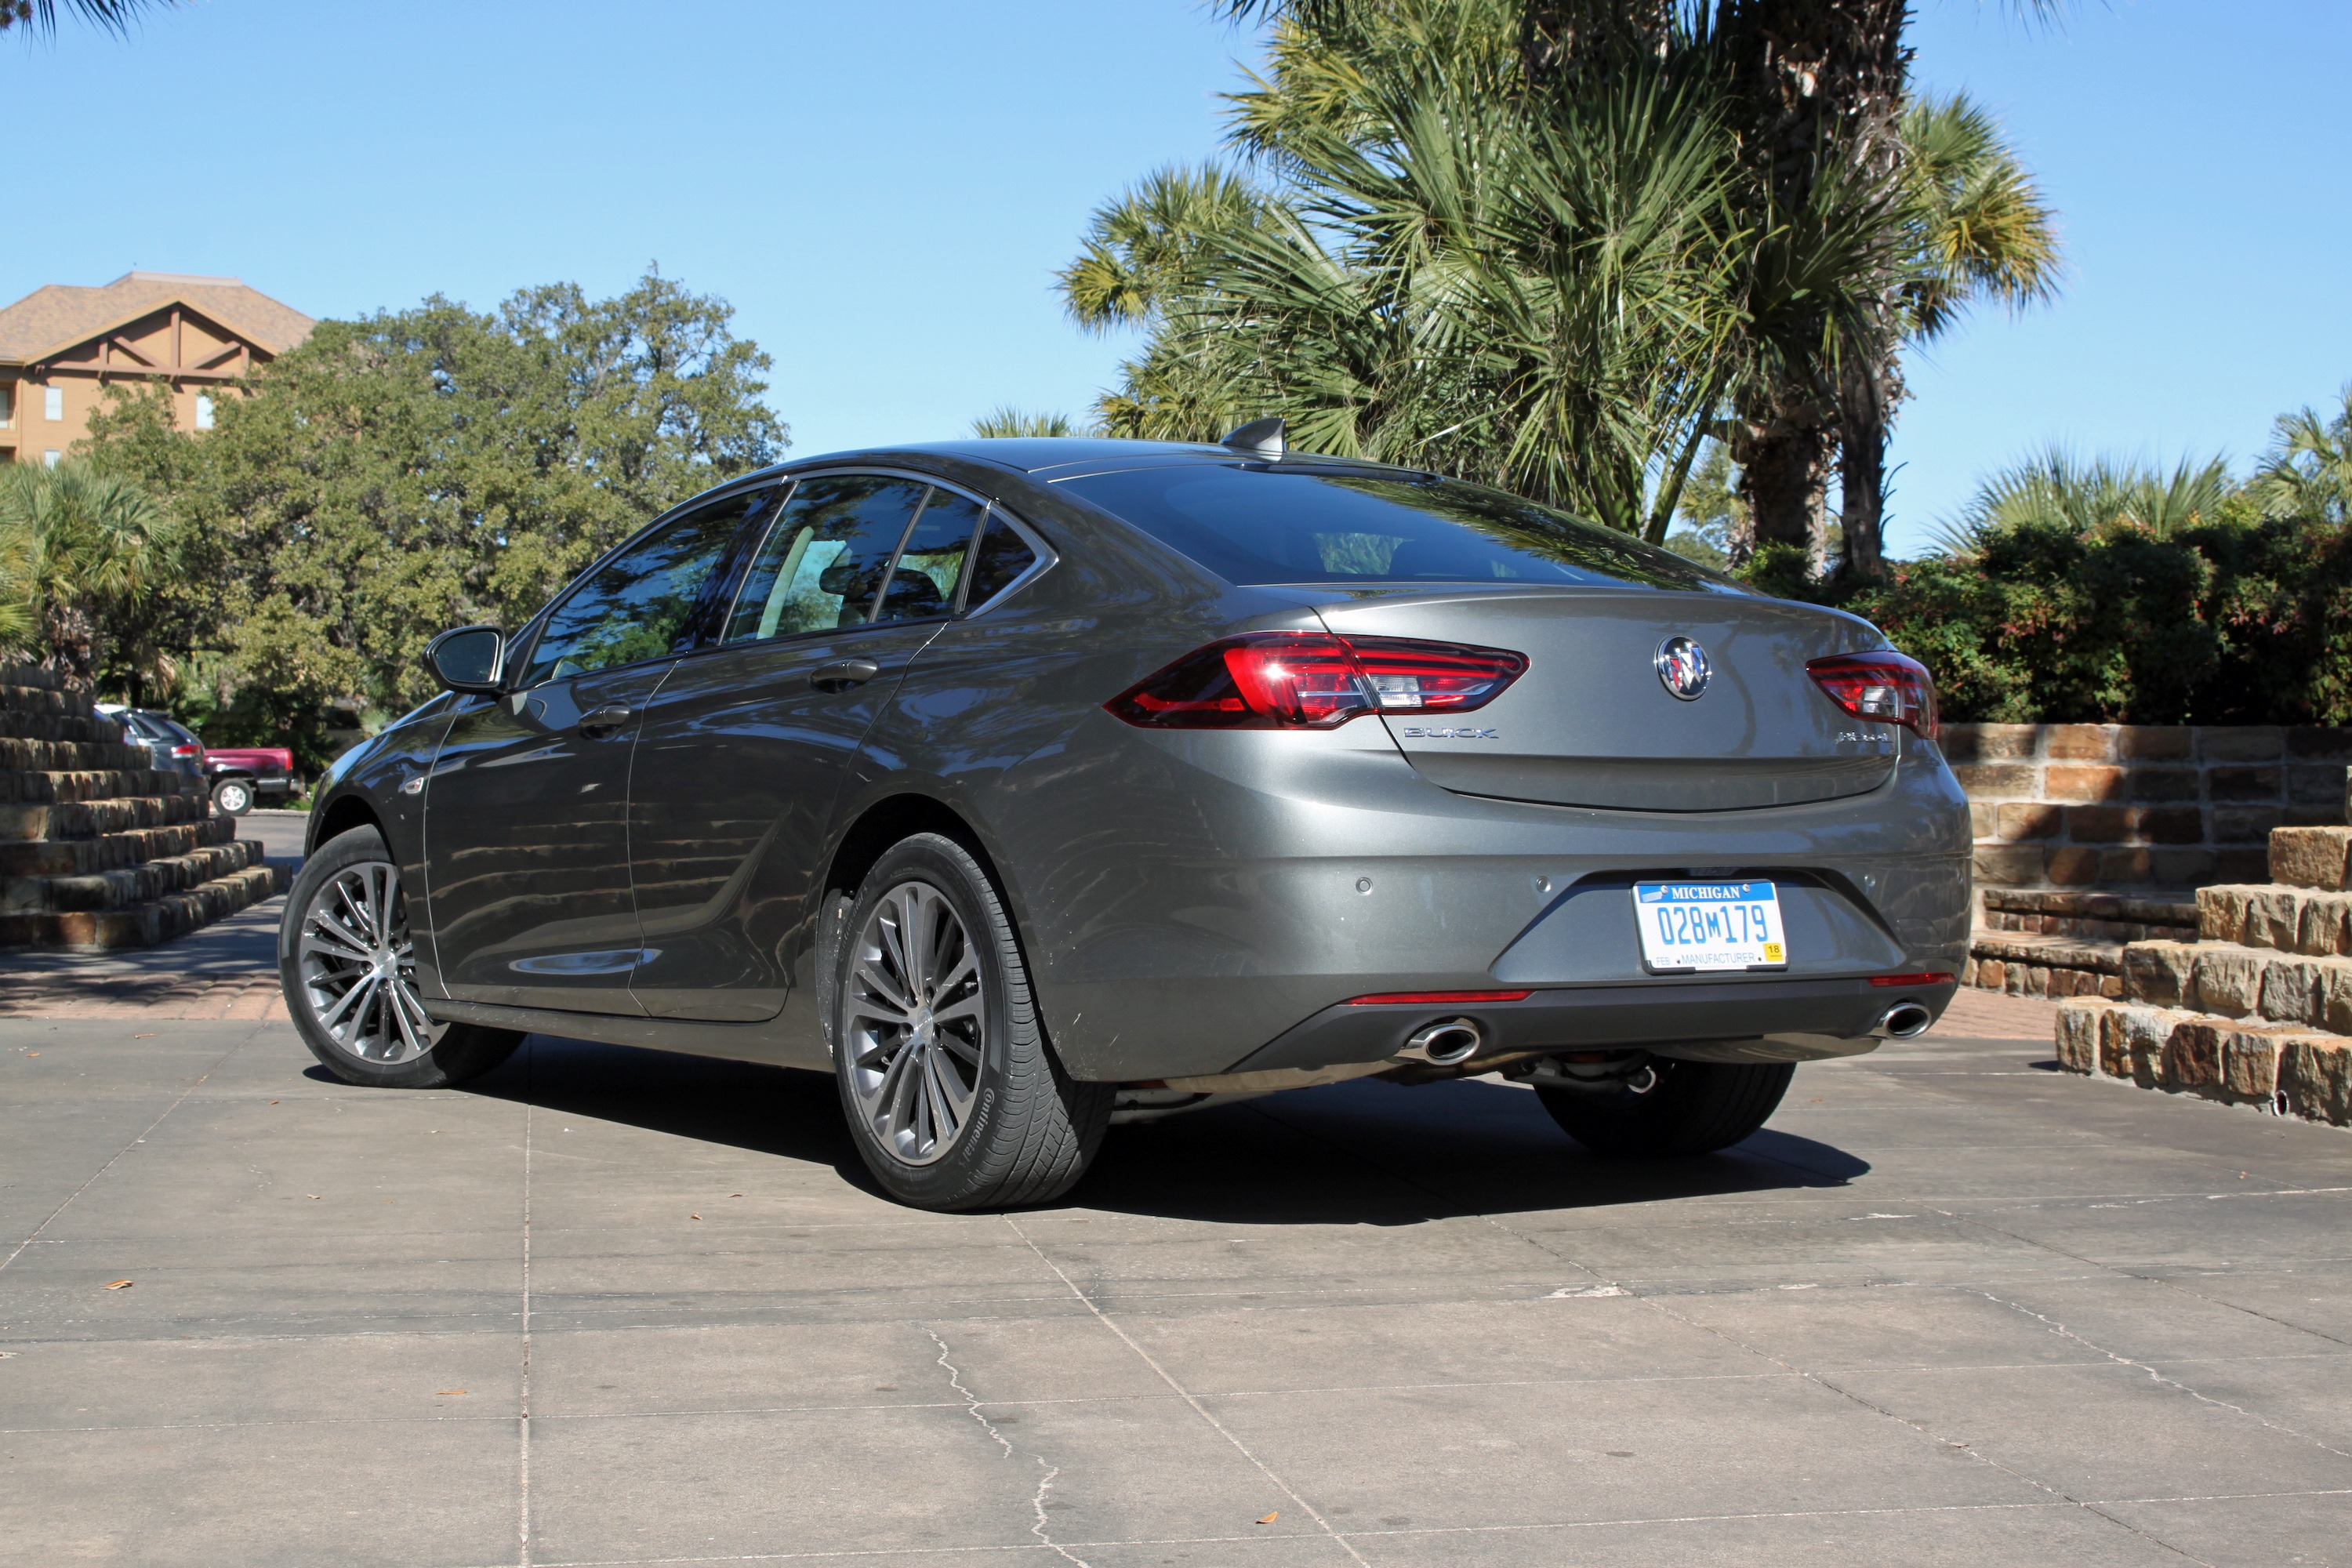 2018 Buick Regal Sportback Review - AutoGuide.com